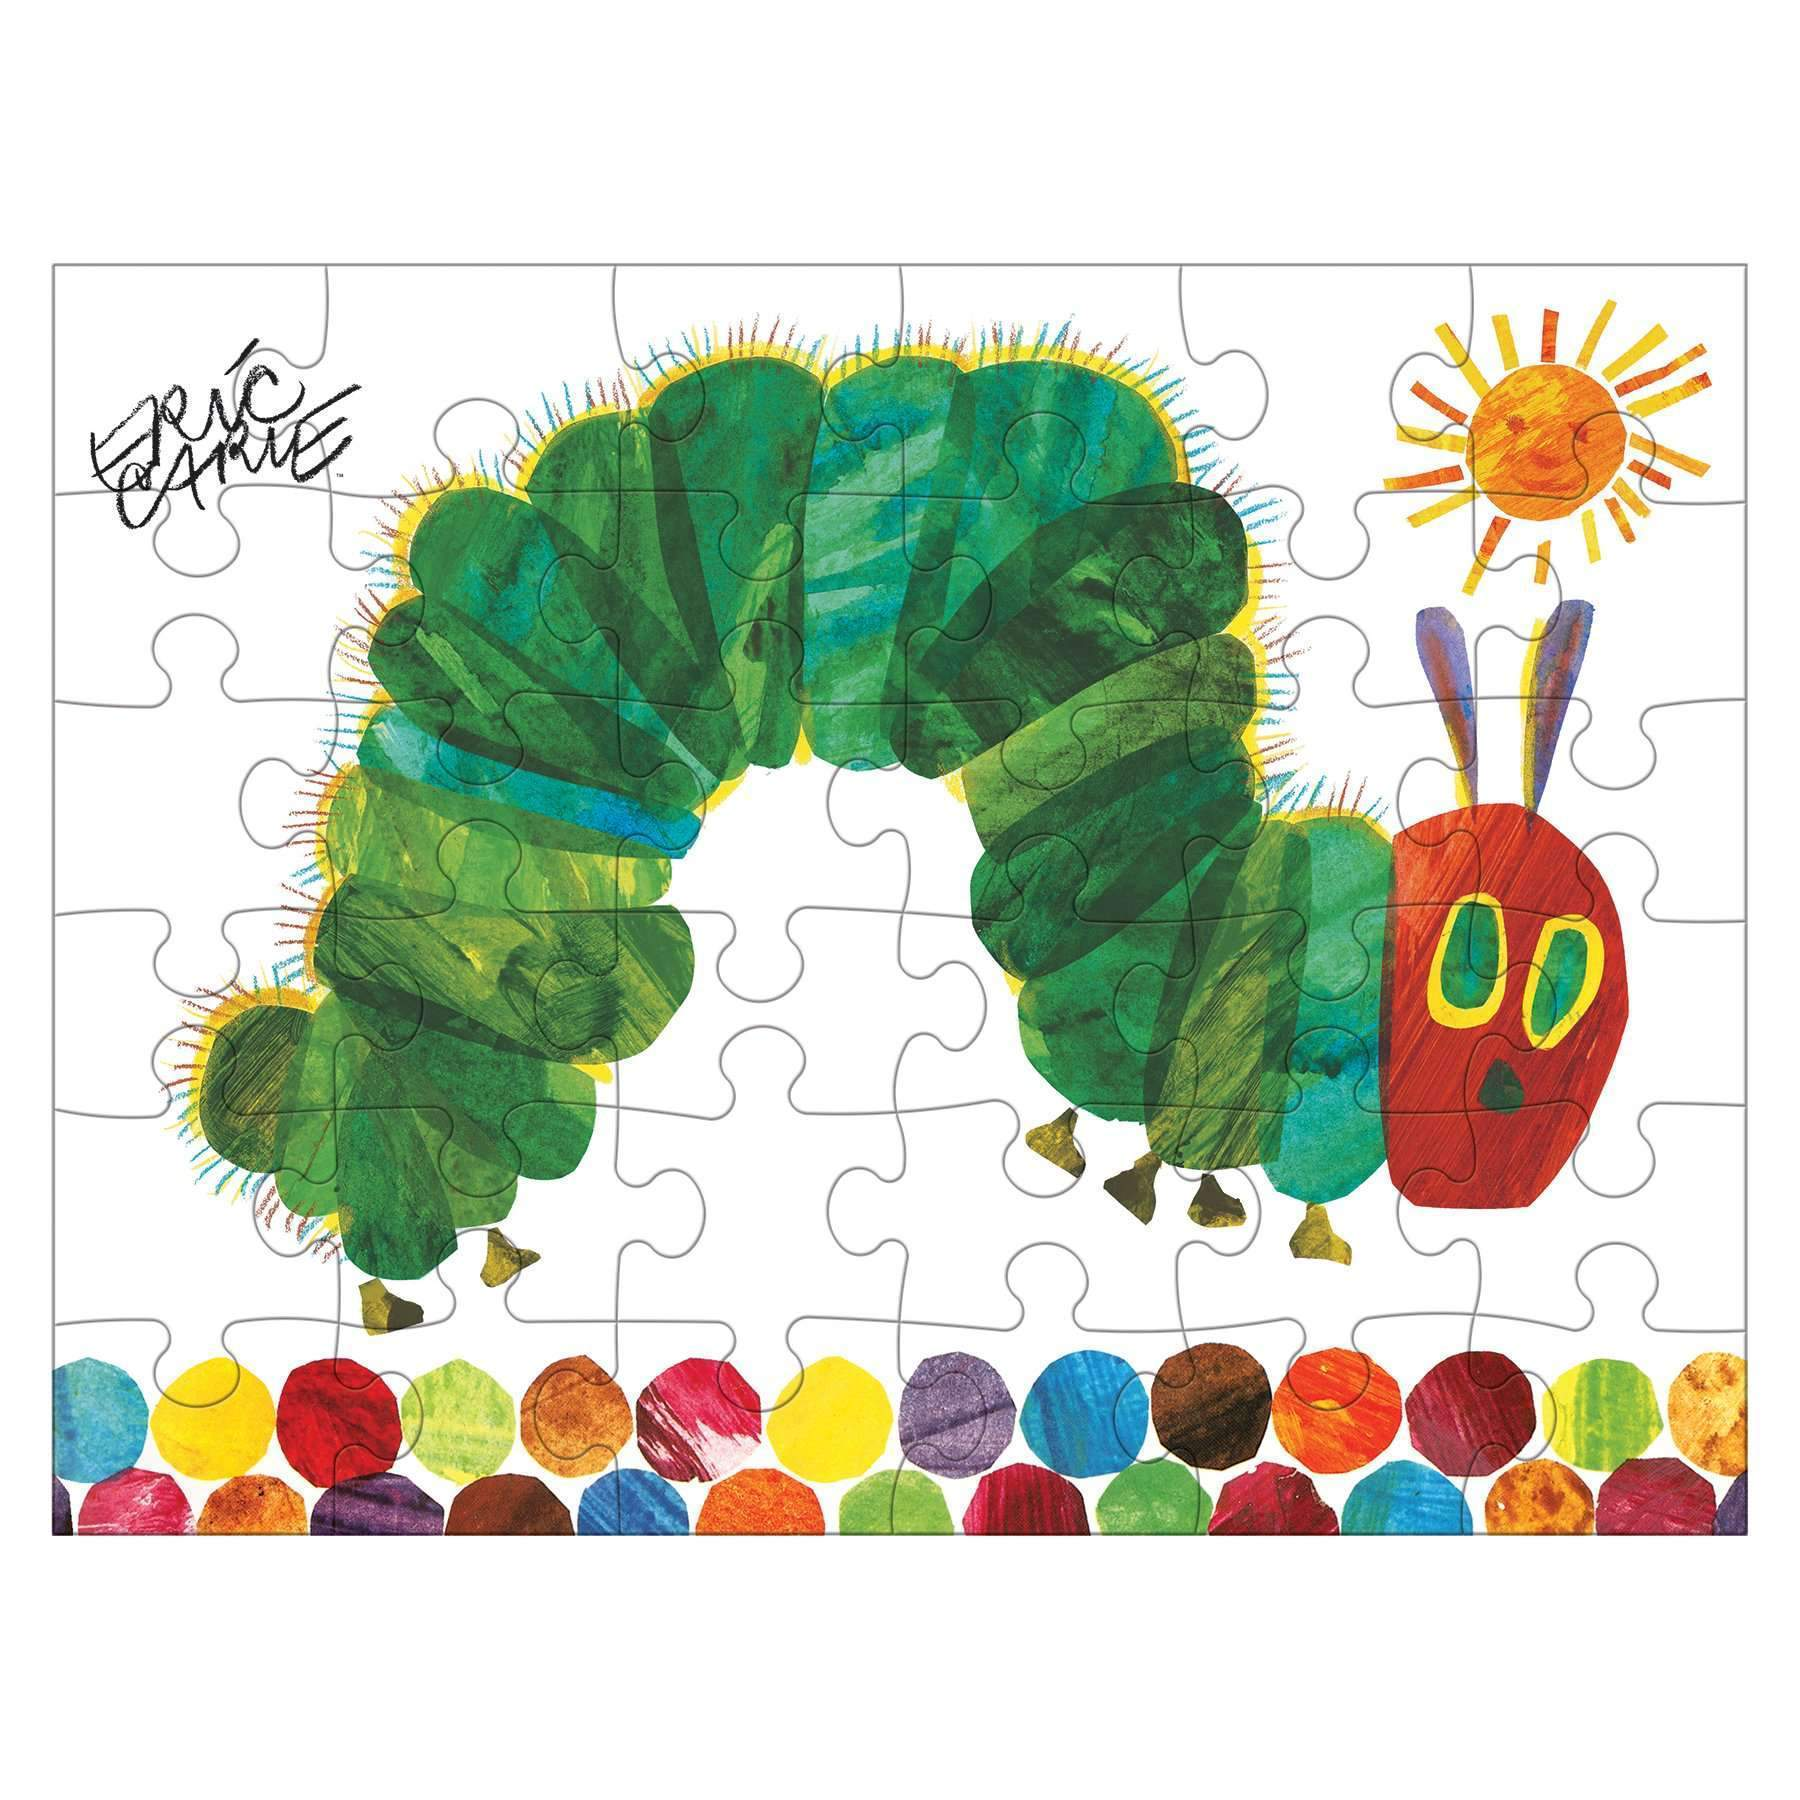 cdb47ada9 The World Of Eric Carle The Very Hungry Caterpillar Puzzle To Go Puzzles to  go Mudpuppy